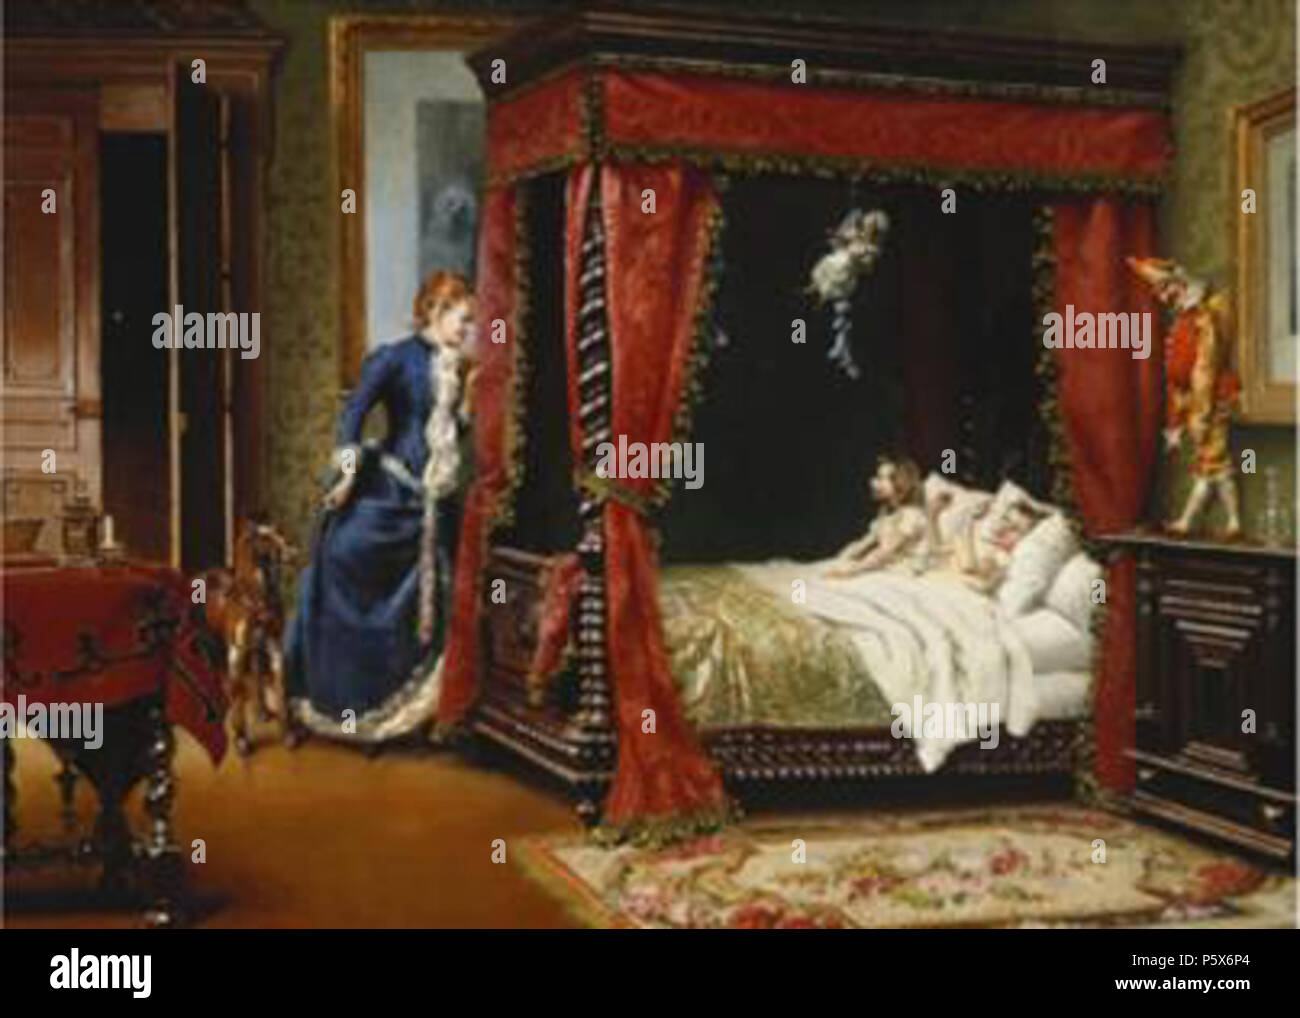 N/A. English: Bed Time . before 1900. Oreste Cortazzo (1836-1910) 382 Cortazzo-Bed - Stock Image